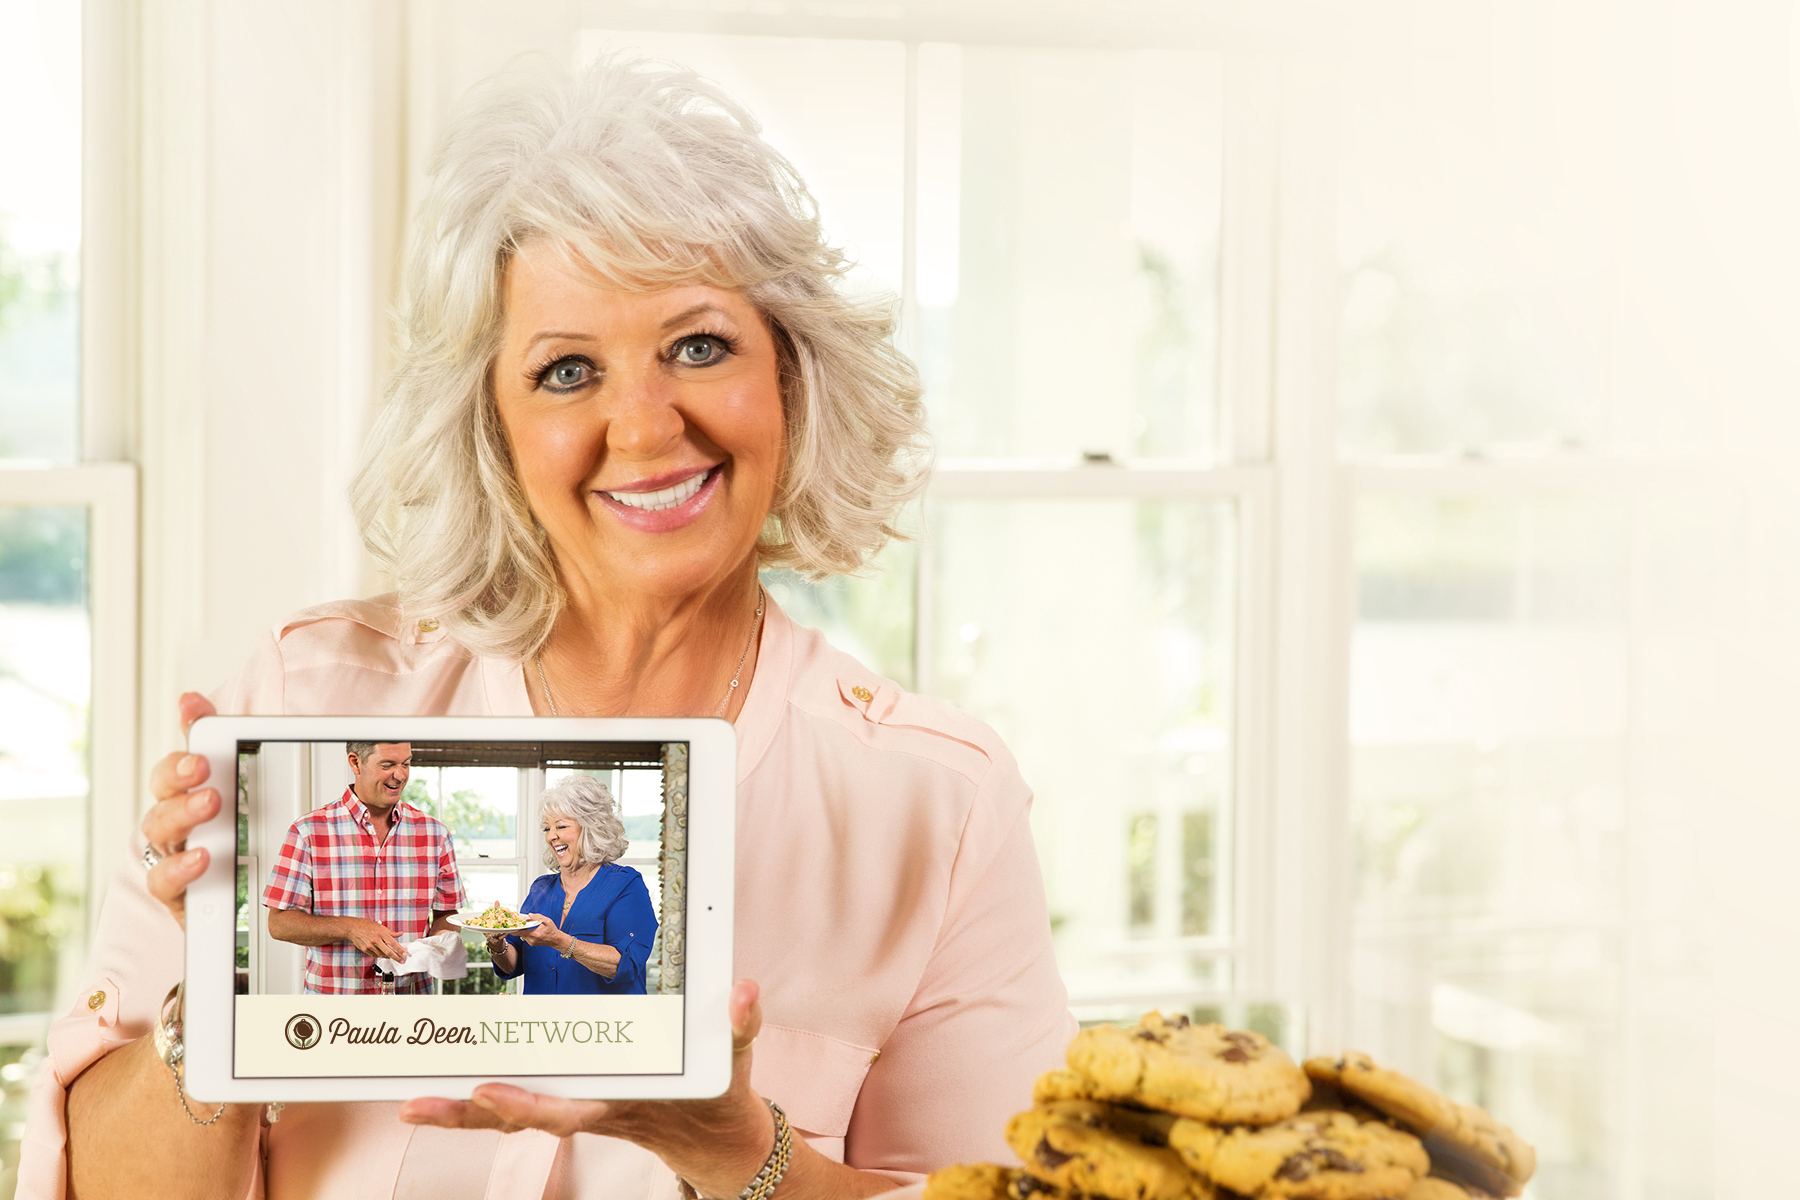 Paula Deen Network to Launch on September 24, 2014   Business Wire